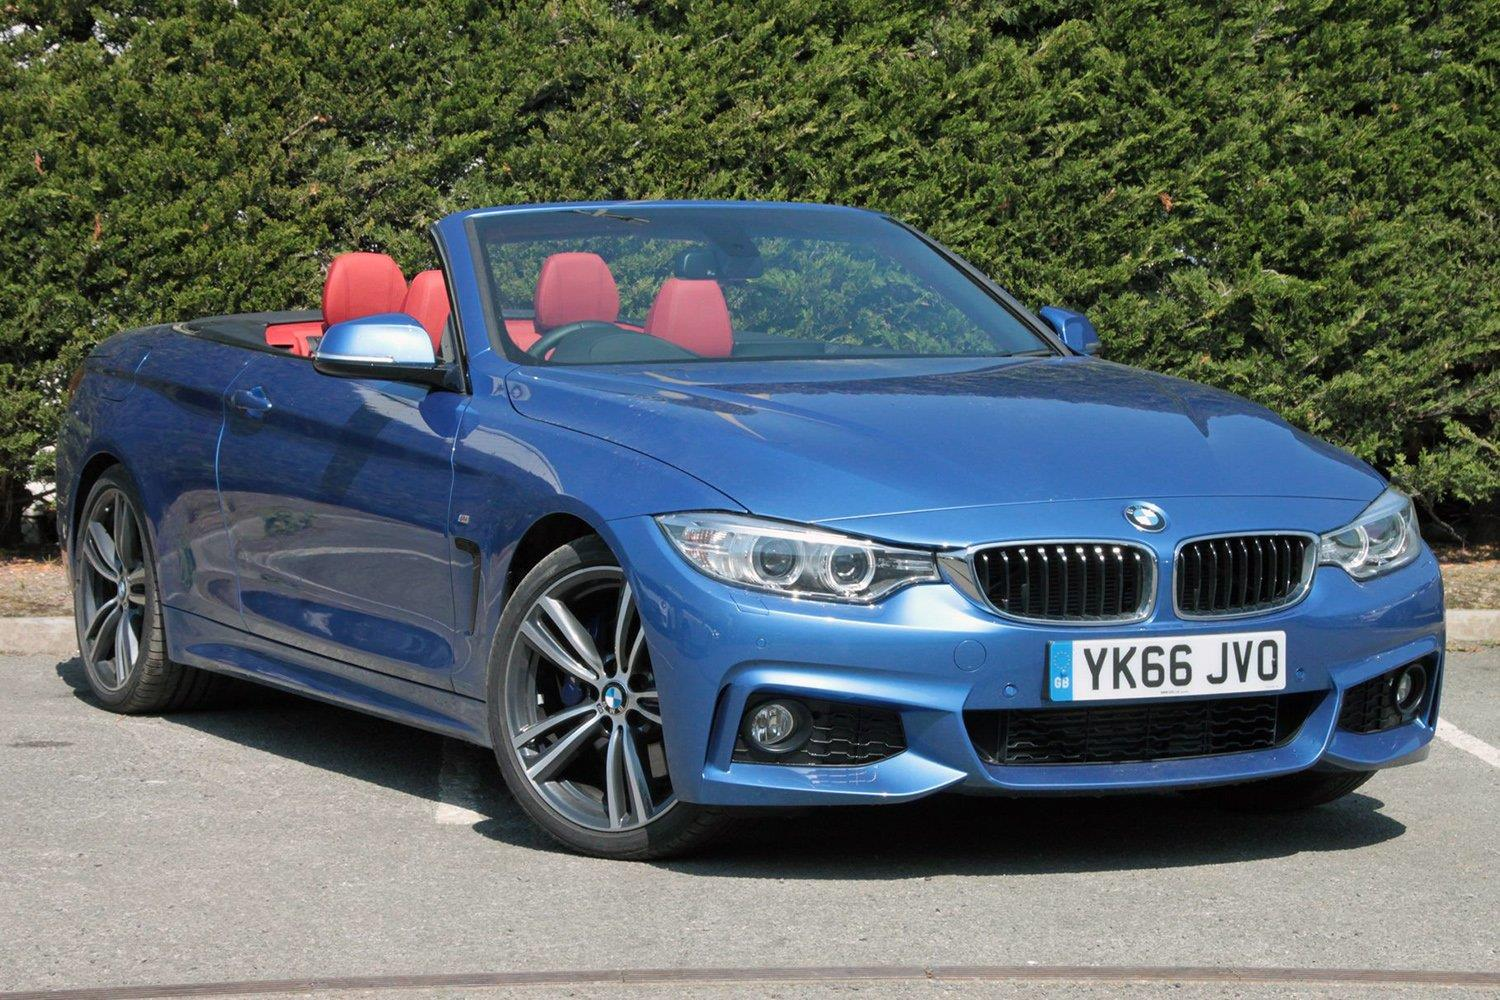 BMW 4 Series Convertible YK66JVO - Image 4